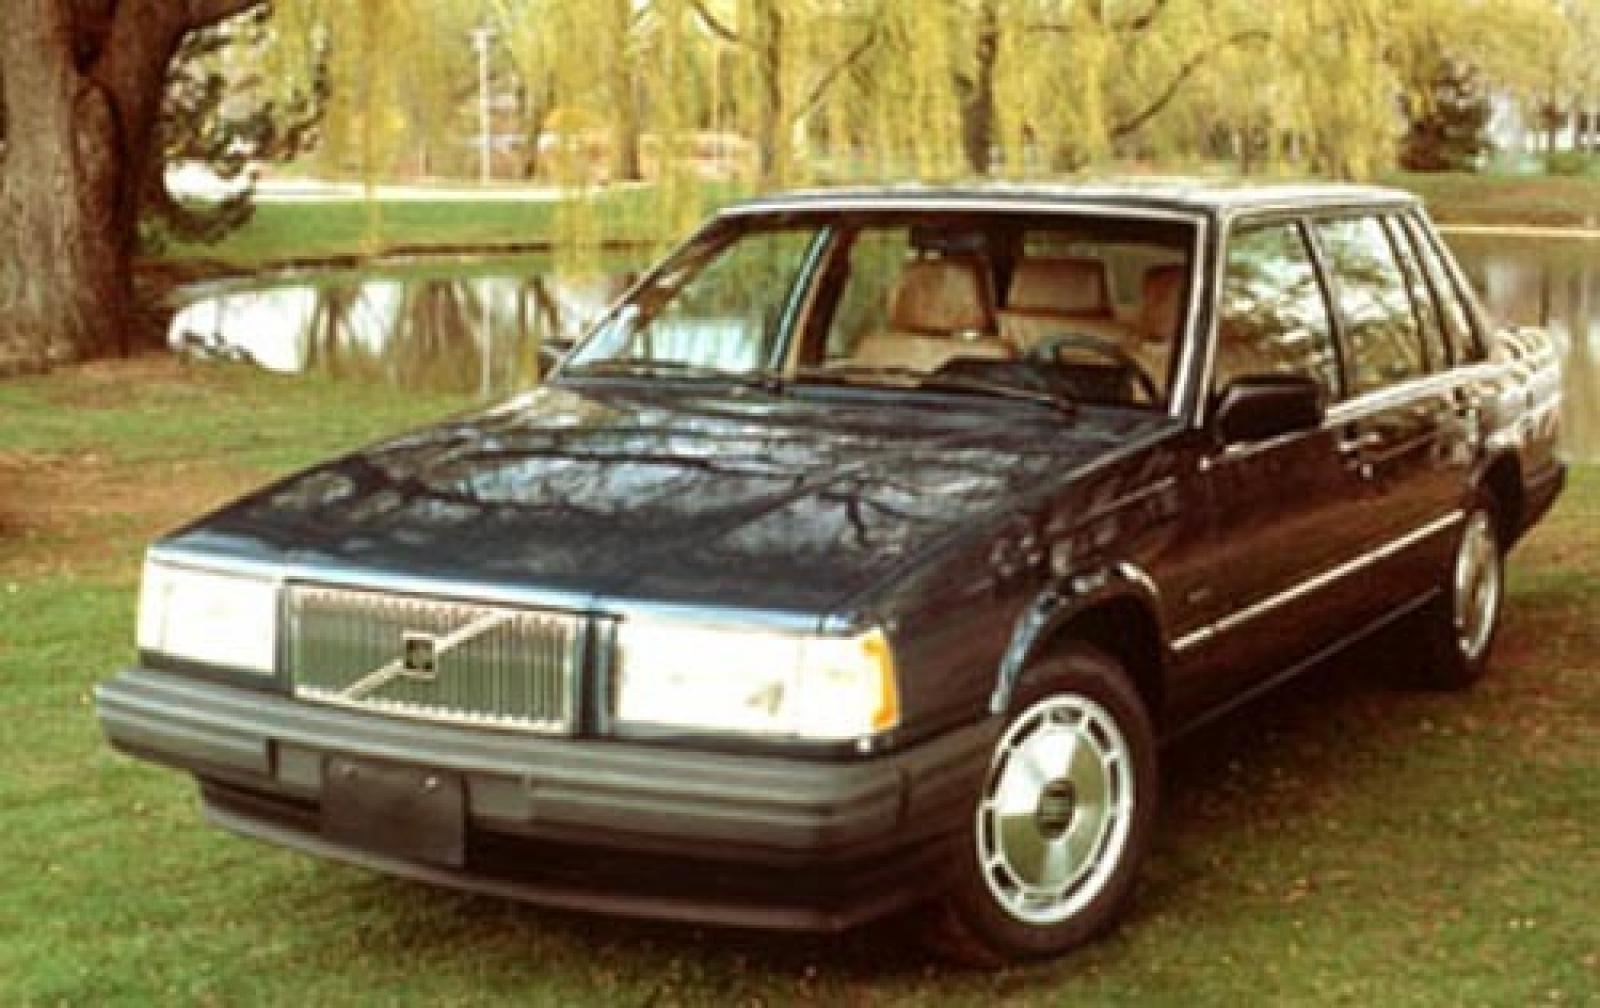 1991 Volvo 740 - Information and photos - Zomb Drive